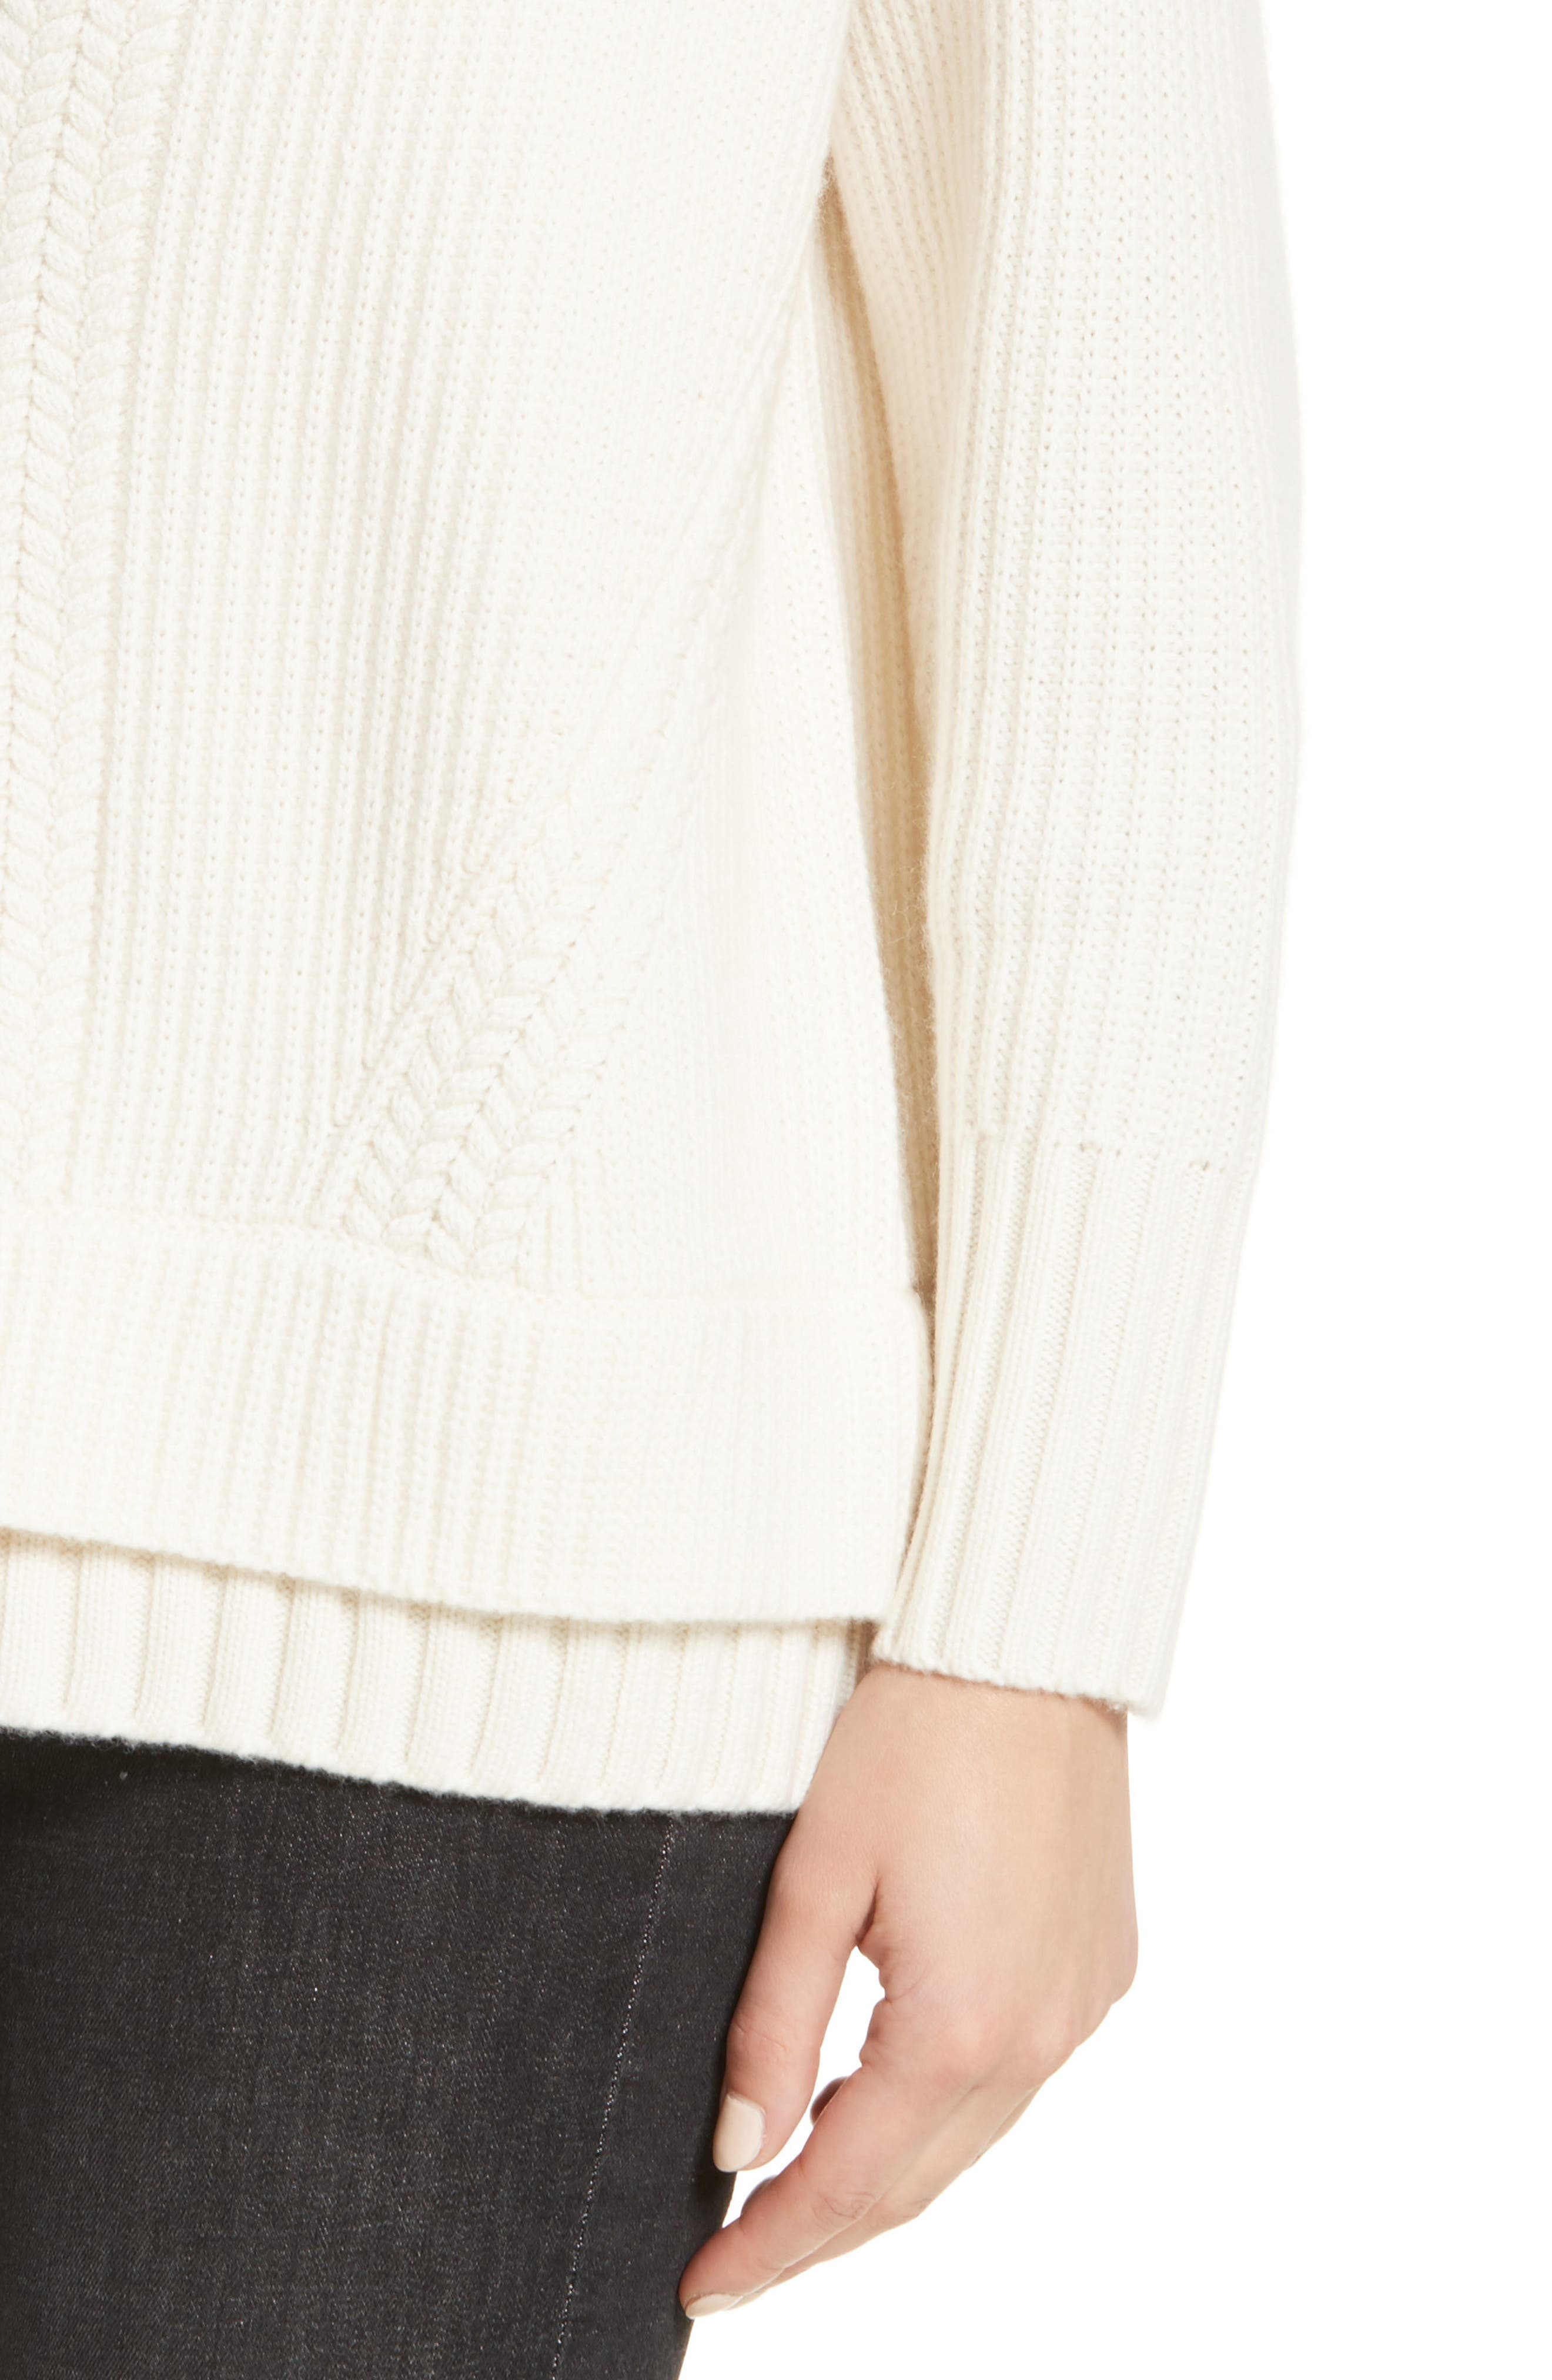 Santerno Wool & Cashmere Cable Knit Sweater,                             Alternate thumbnail 4, color,                             Natural White